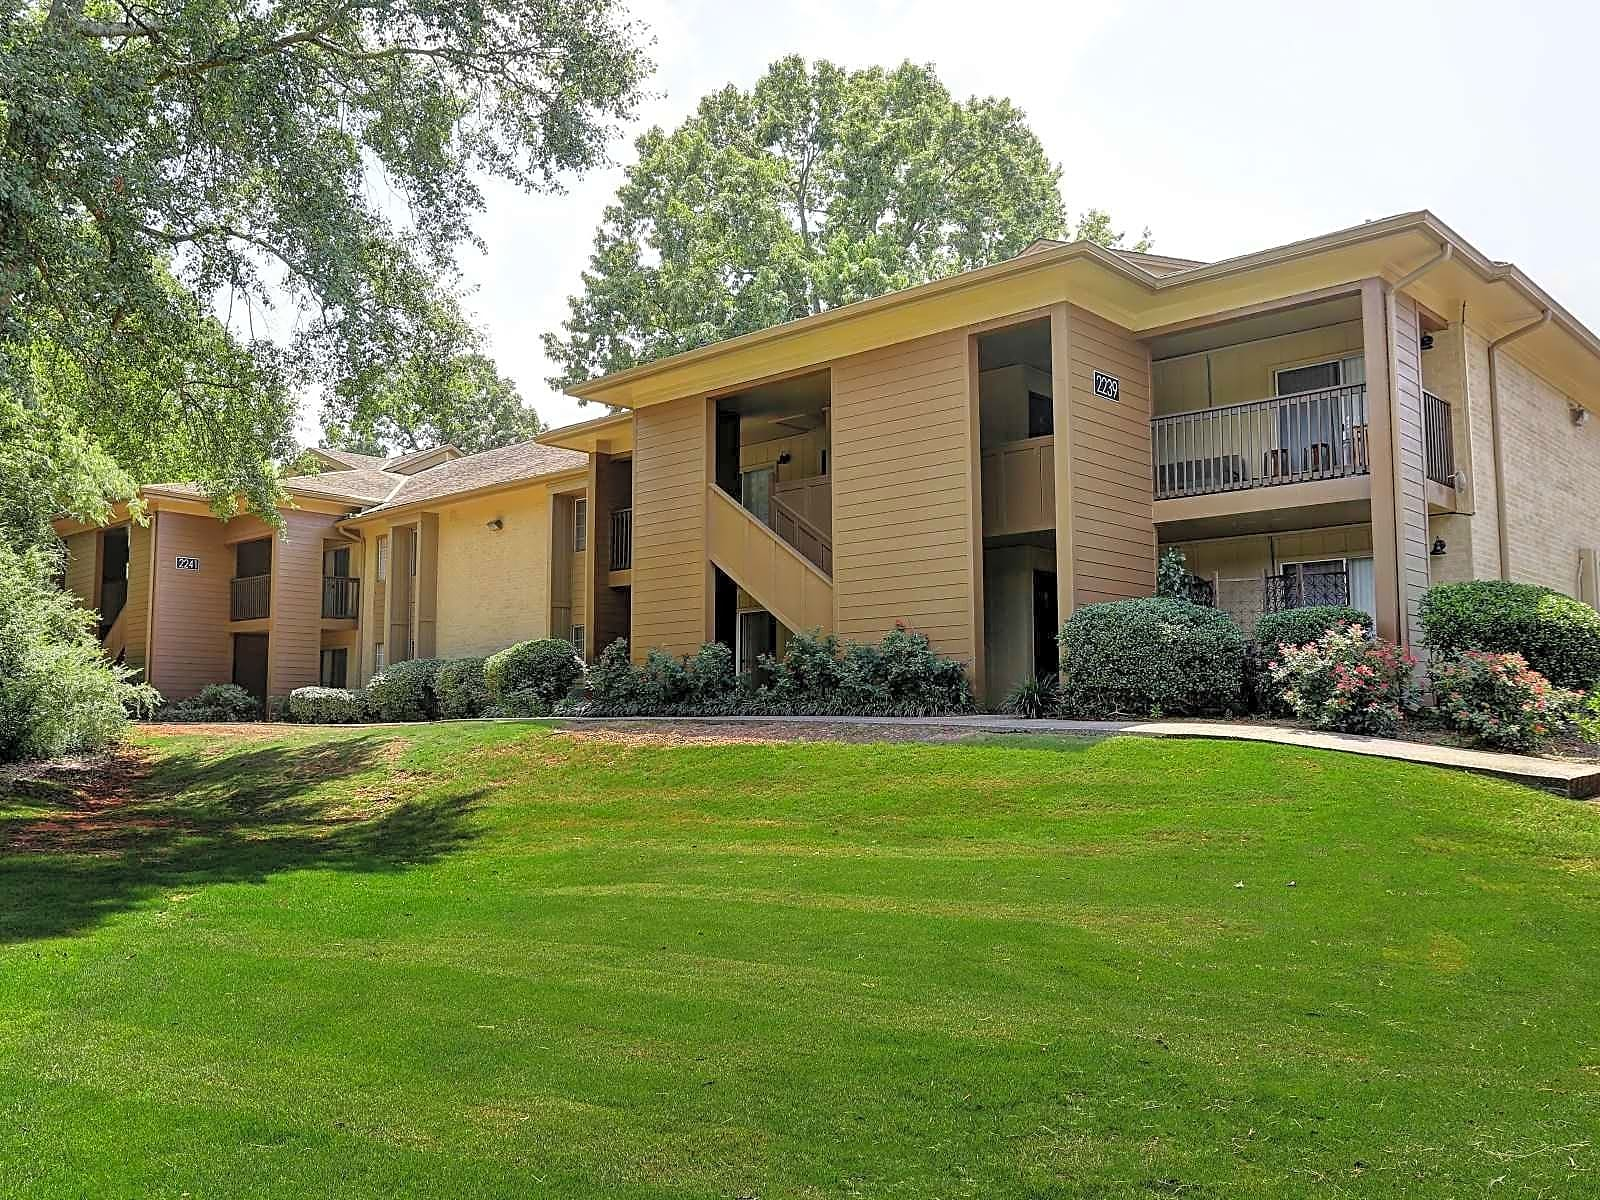 Elevation At Hoover Apartments Hoover Al 35216